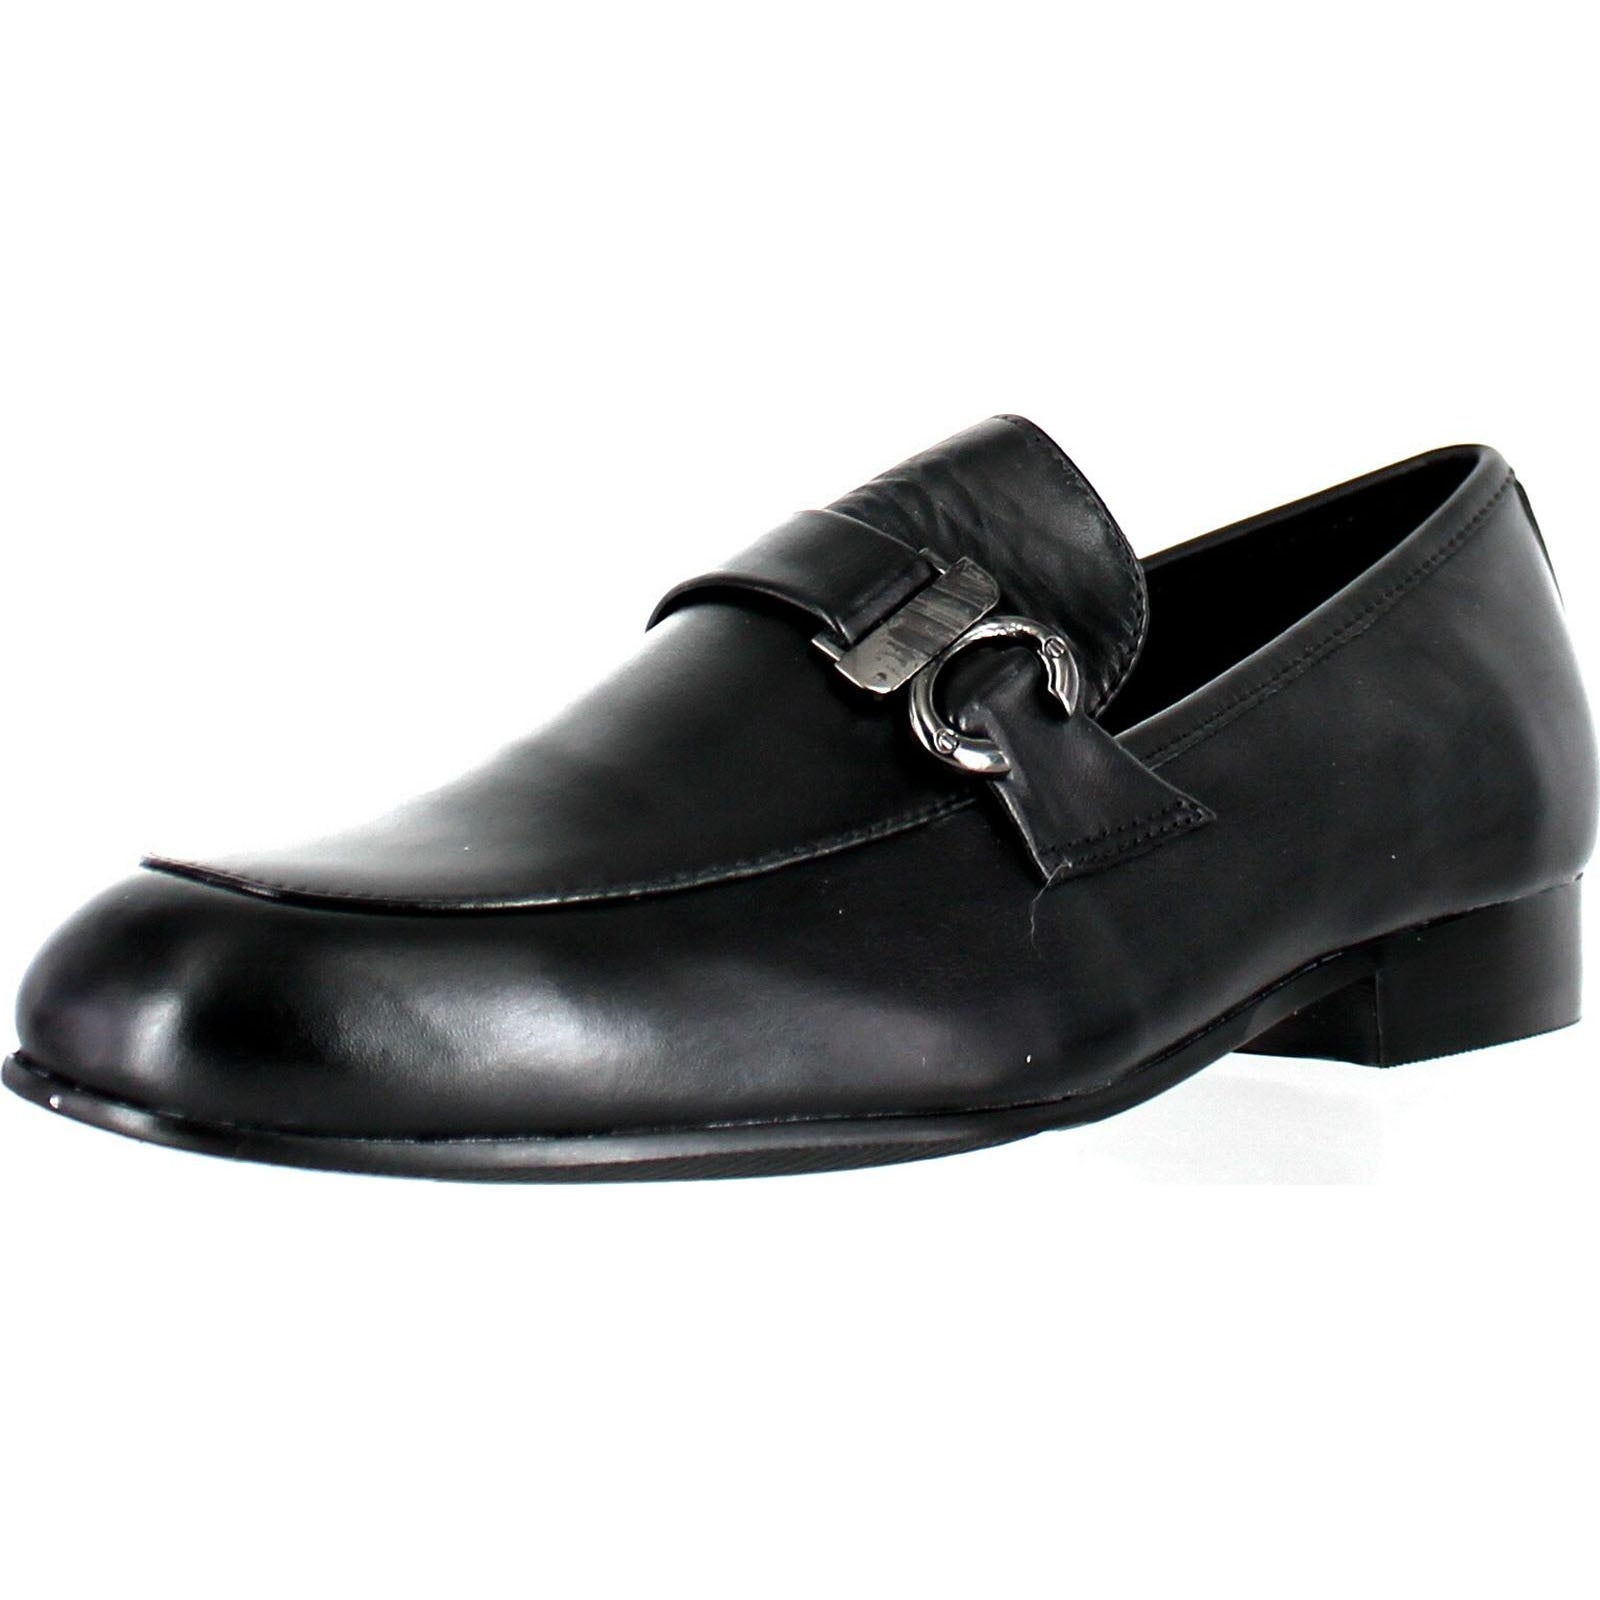 Boys Dress Shoes - Overstock